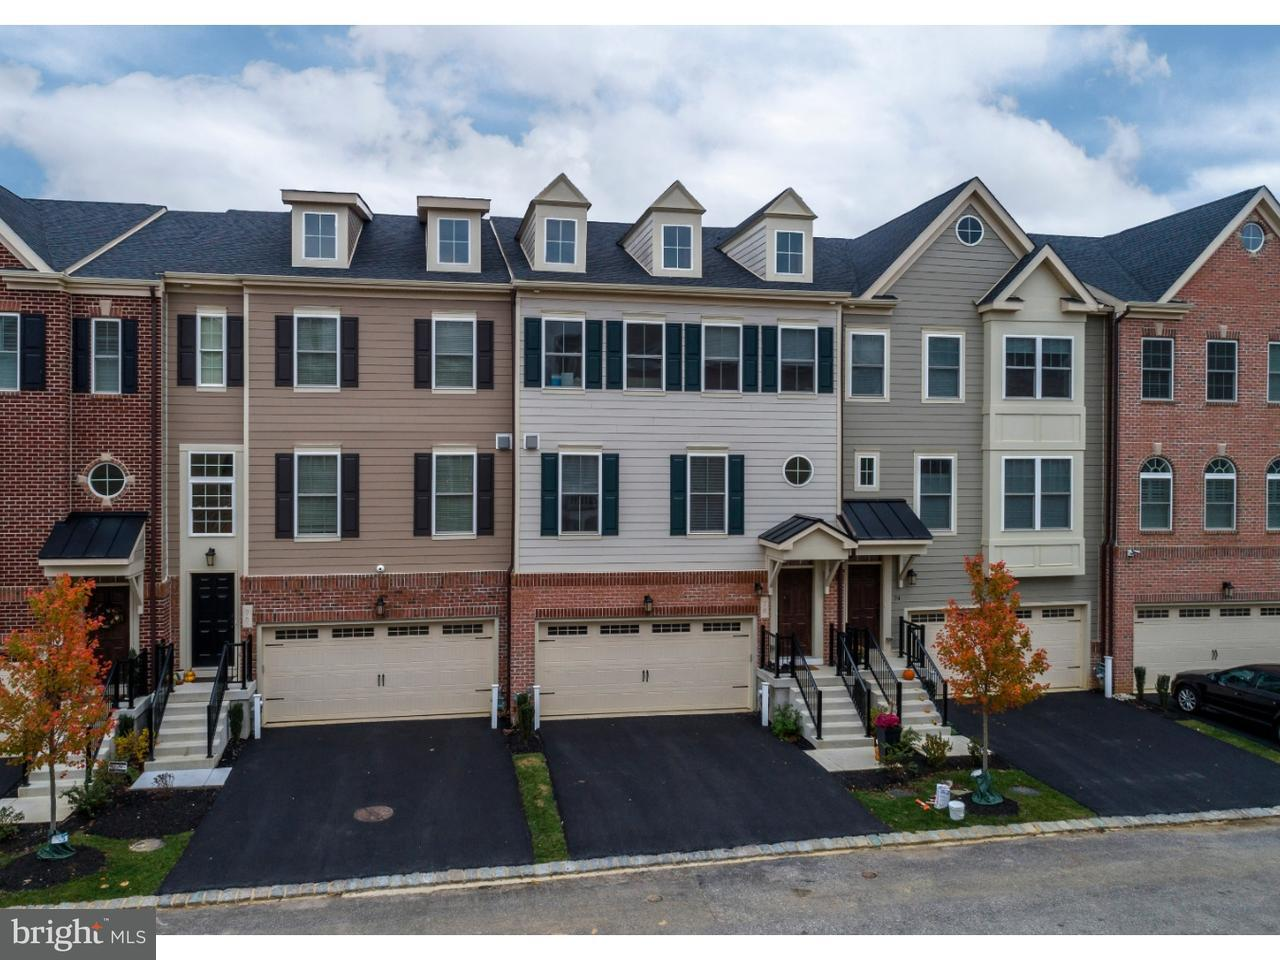 Townhouse for Sale at 562 CHESTERBROOK BLVD Wayne, Pennsylvania 19087 United States